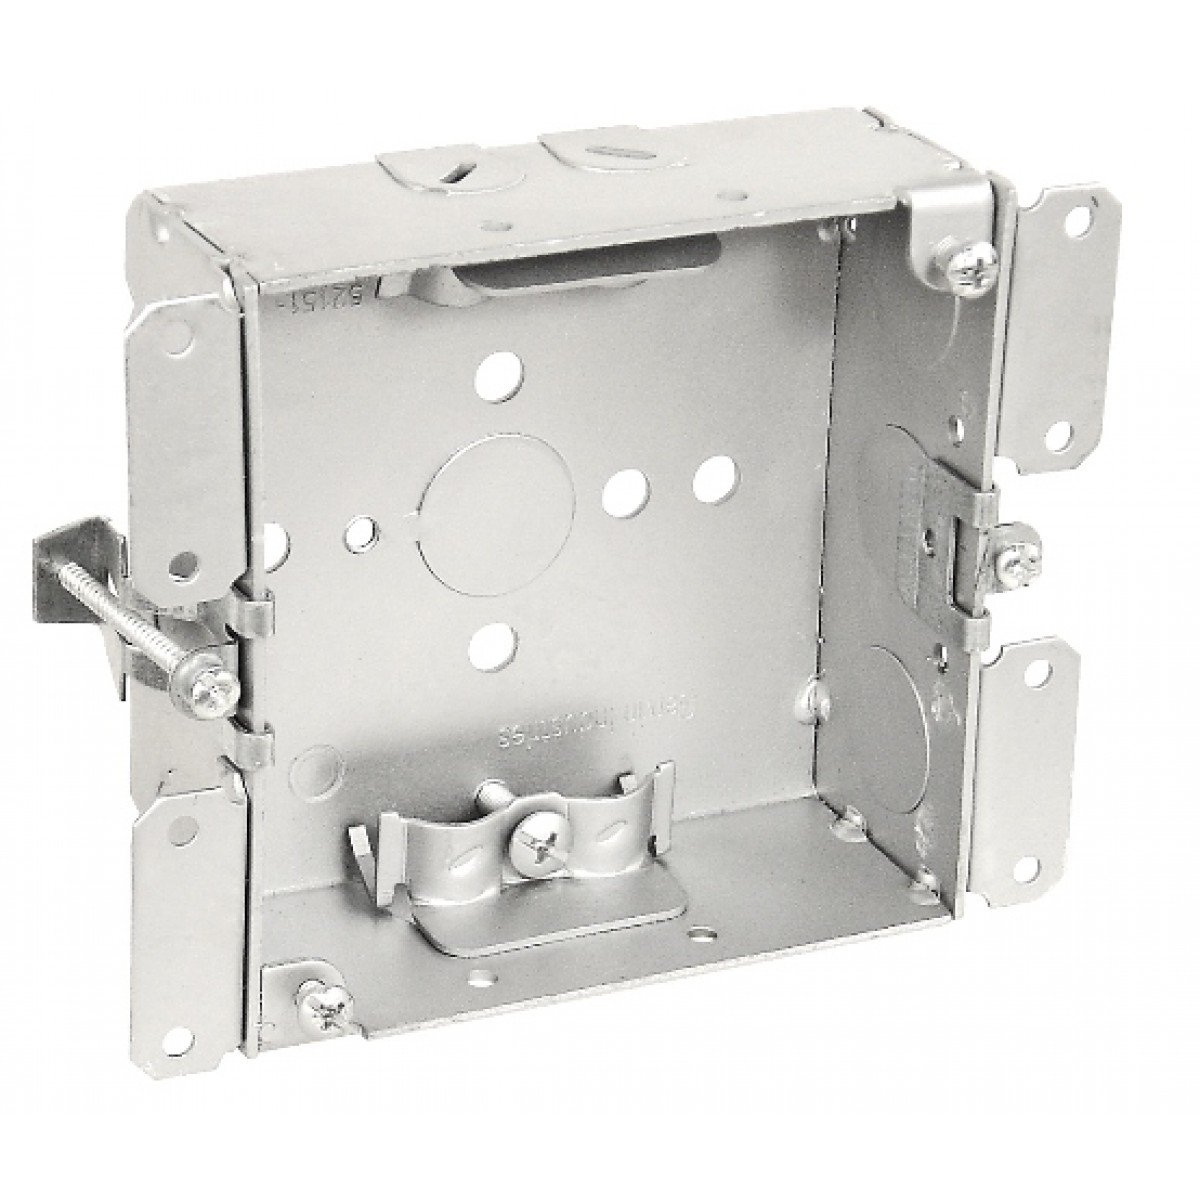 2 Pcs, 4'' Square Old Work Cut-In Box, 1-1/2 In. Deep, w/Clamps for Nm Cable, .0625 Galvanized Steel to Add Devices, Speakers, Strobes, Alarms, & Devices to Hollow Walls